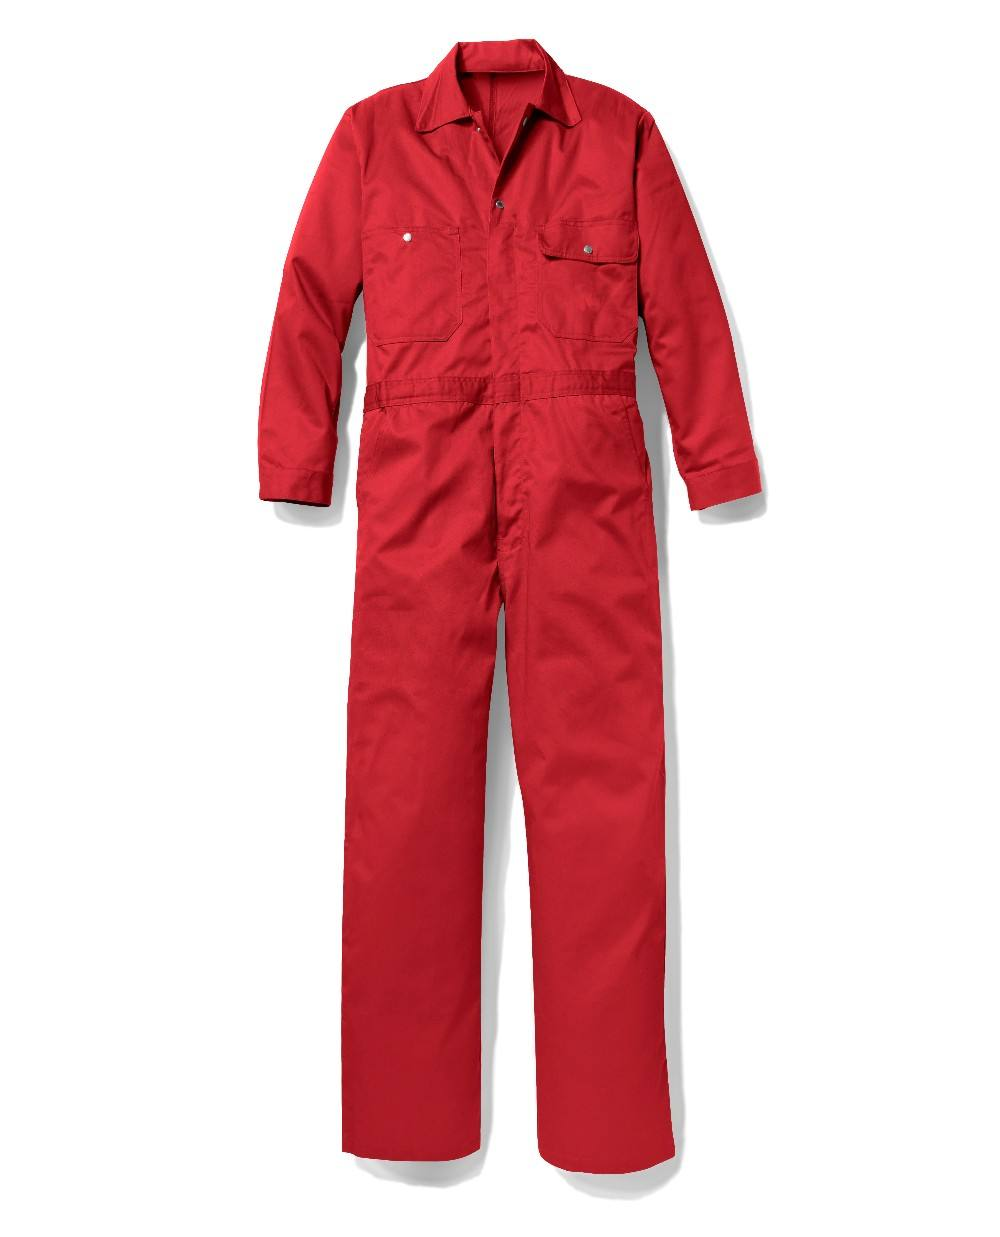 long sleeve red bib overalls for men painters